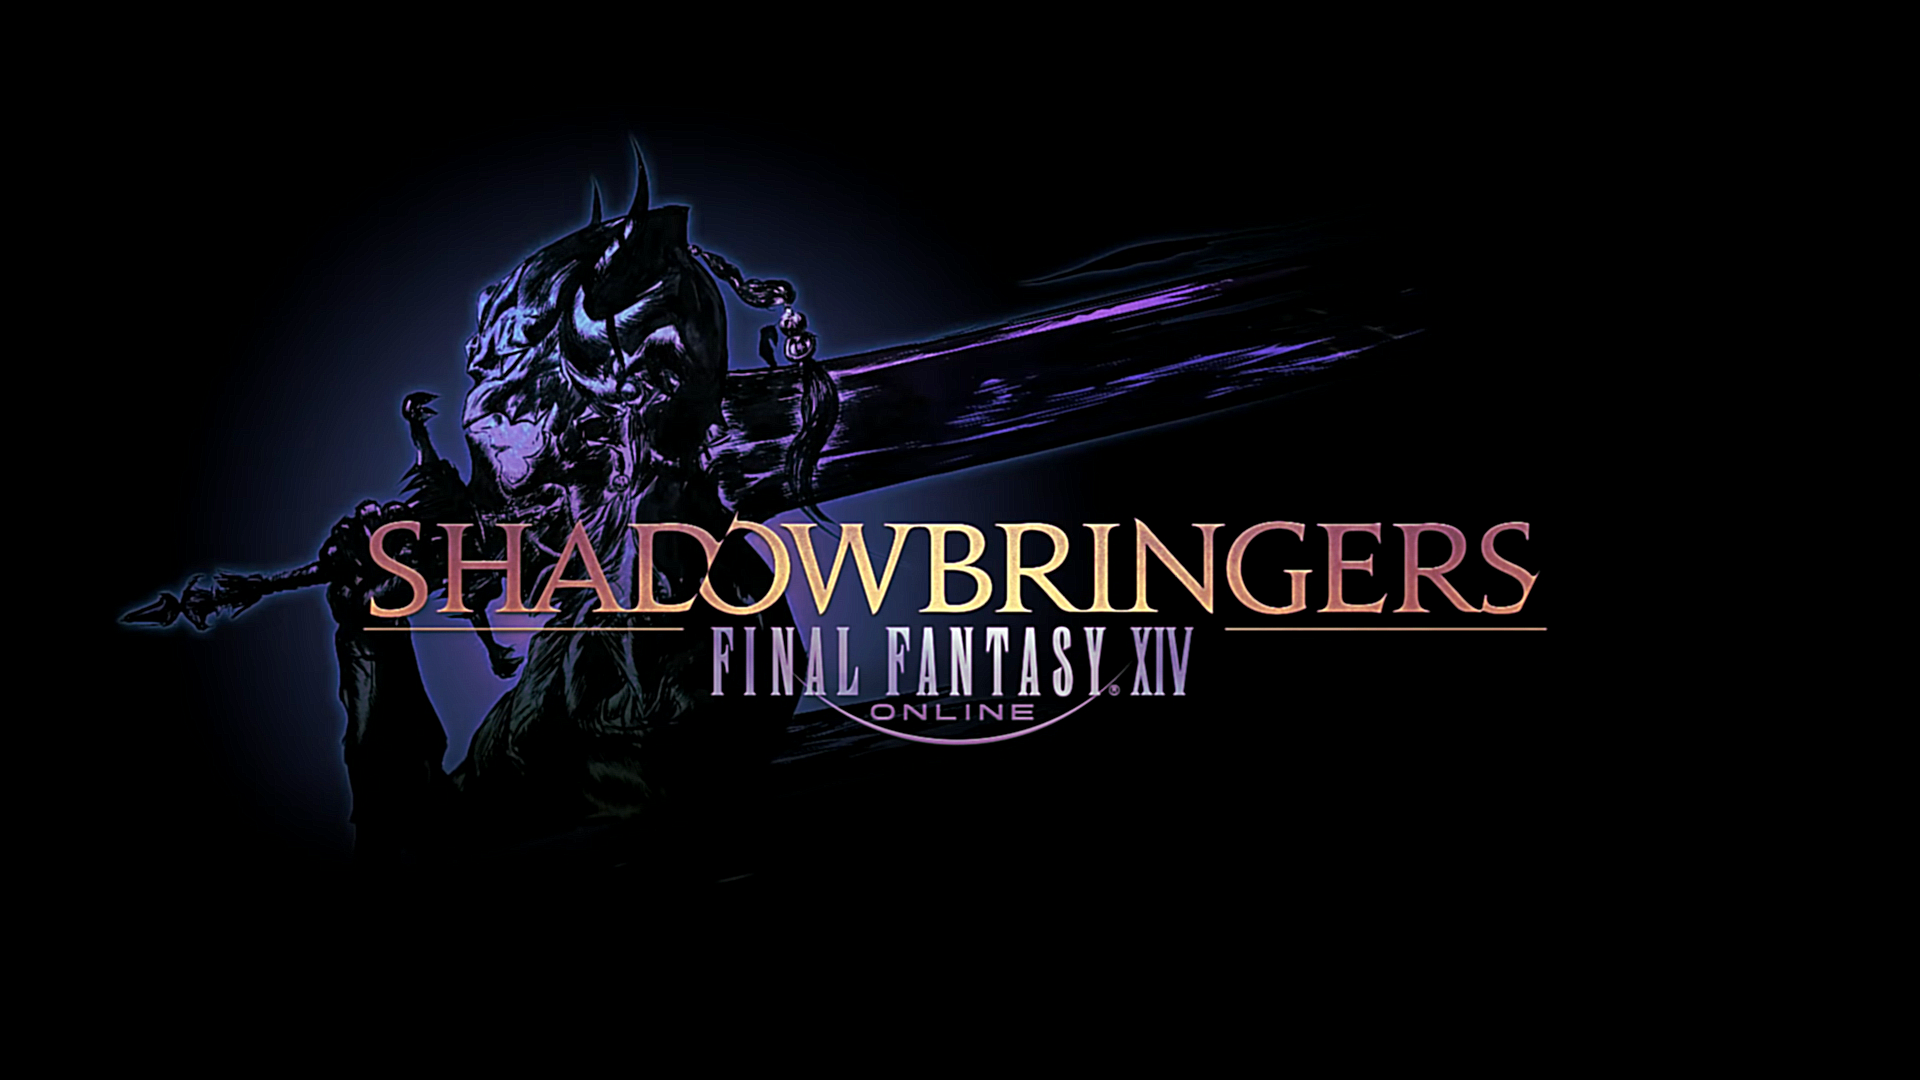 Final Fantasy Xiv Shadowbringers Preview Trusted Reviews